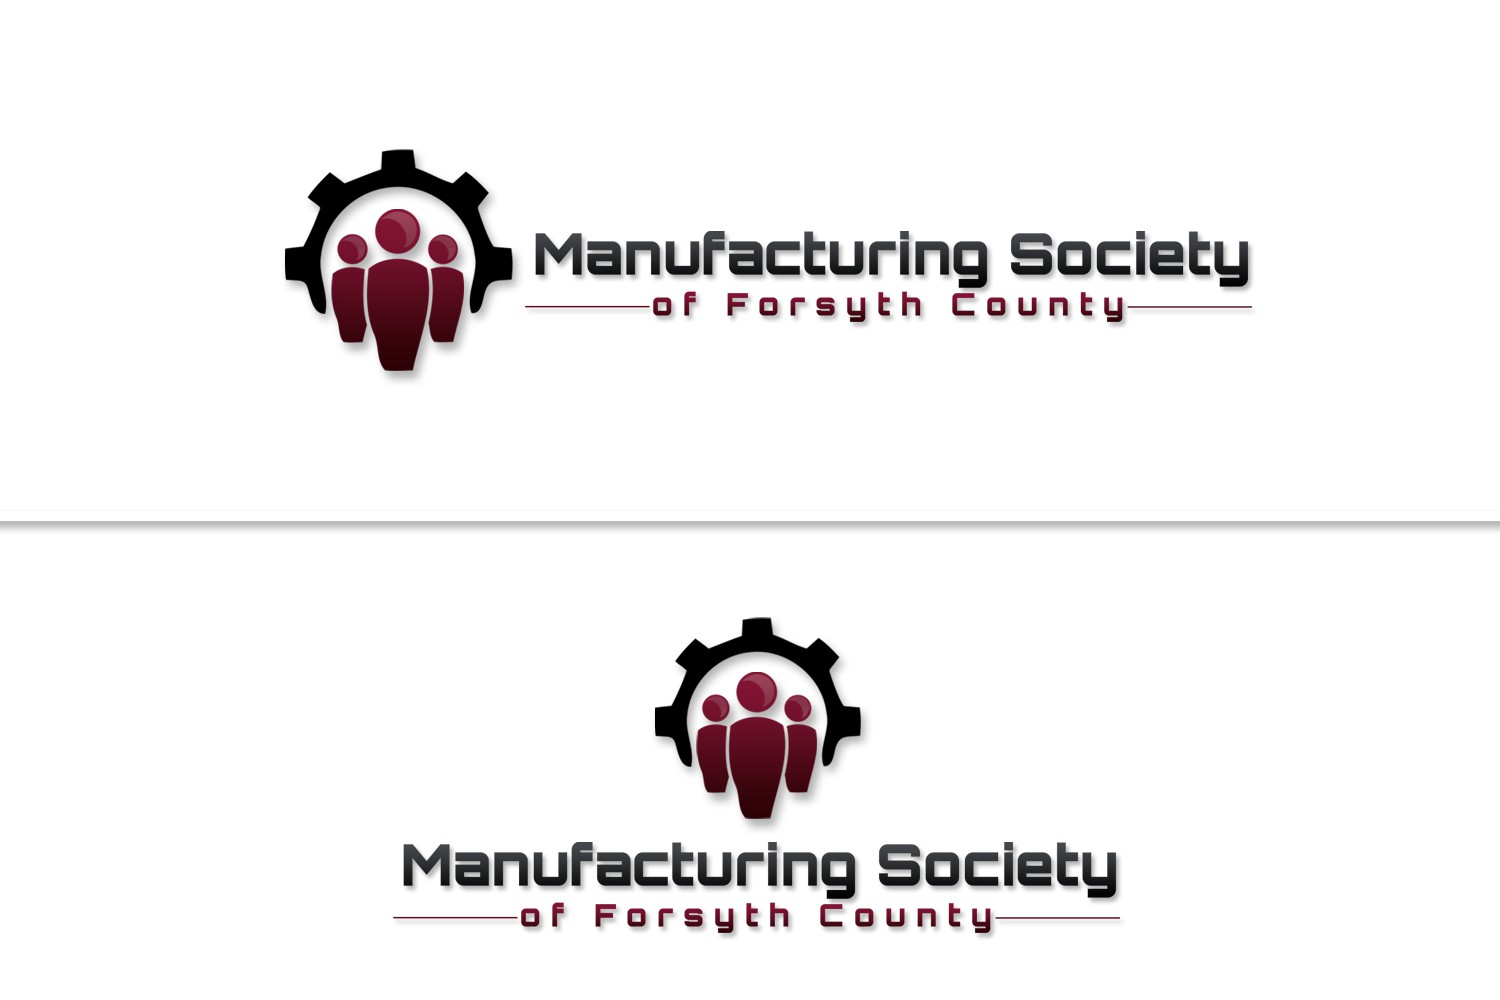 Manufacturing Society of Forsyth County  needs a new logo